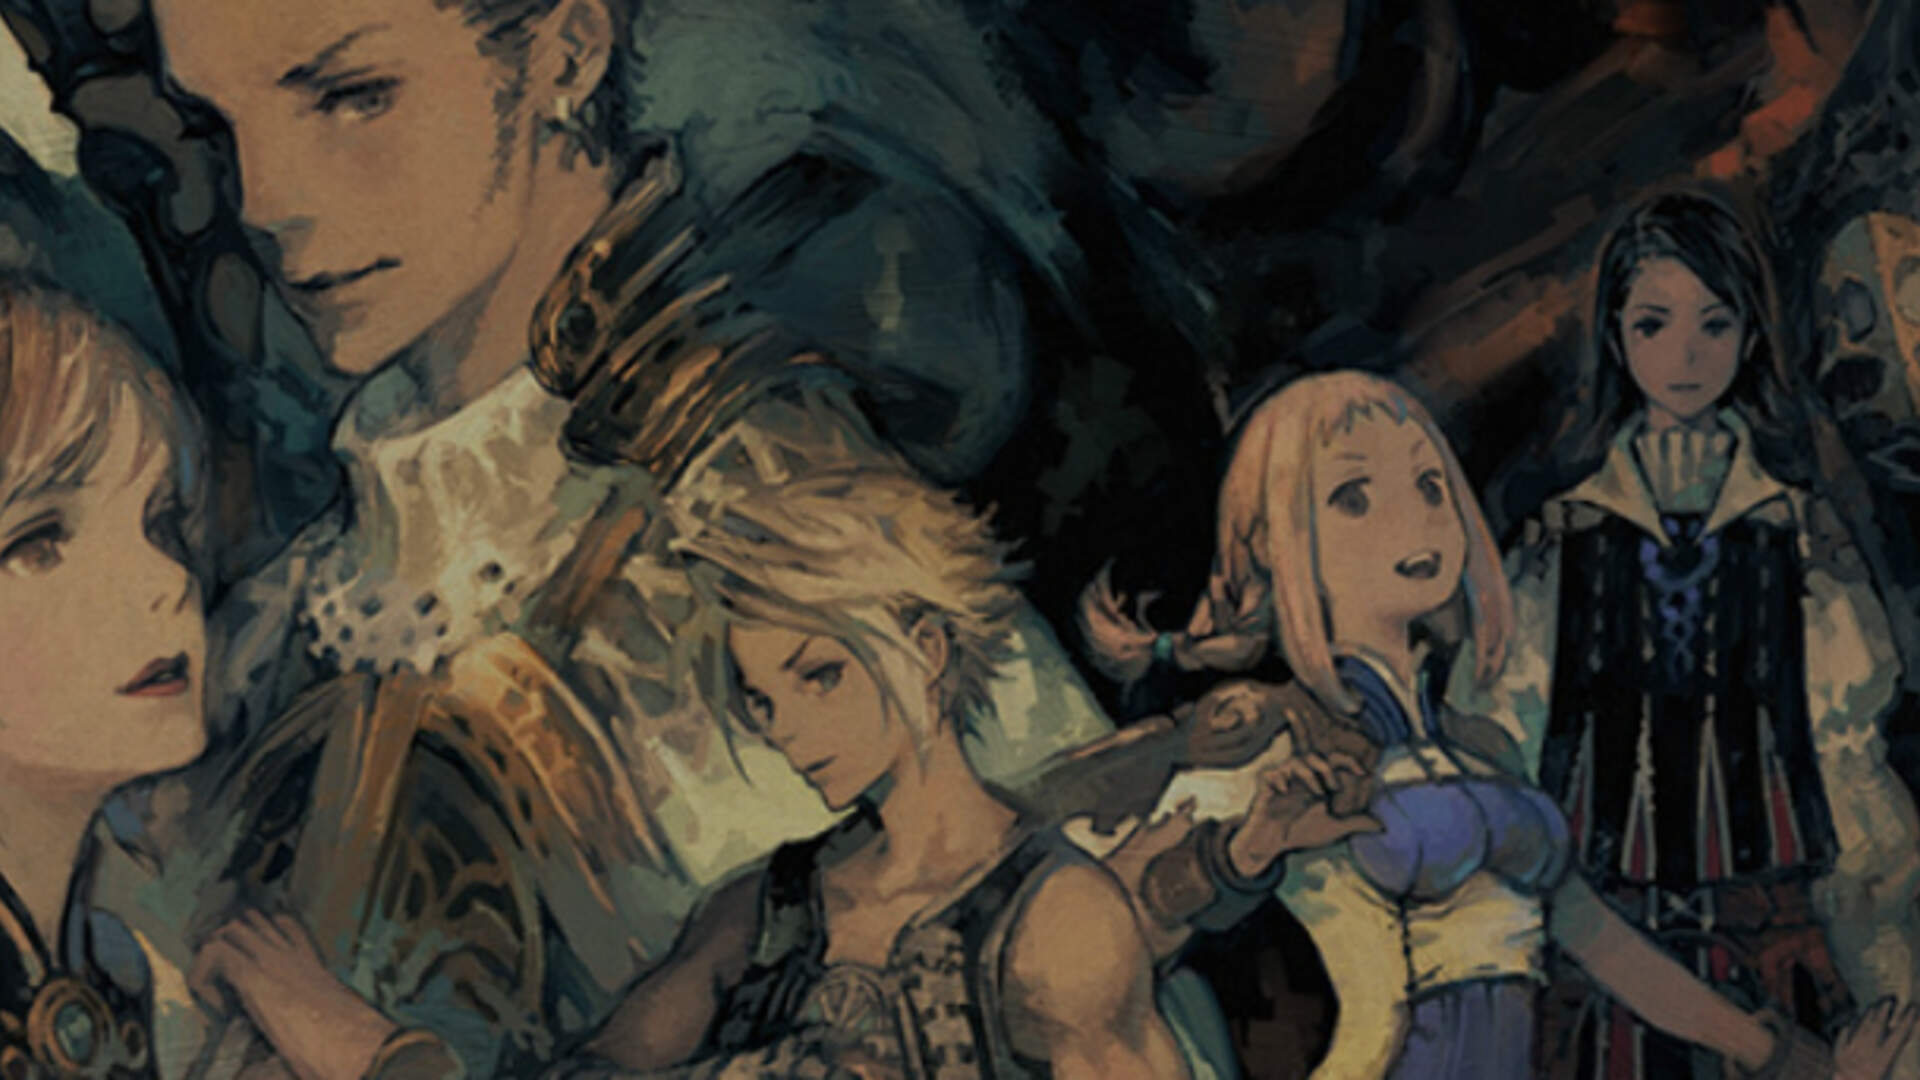 Final Fantasy 12: The Zodiac Age Releases in Just a Few Weeks on PC with New Features